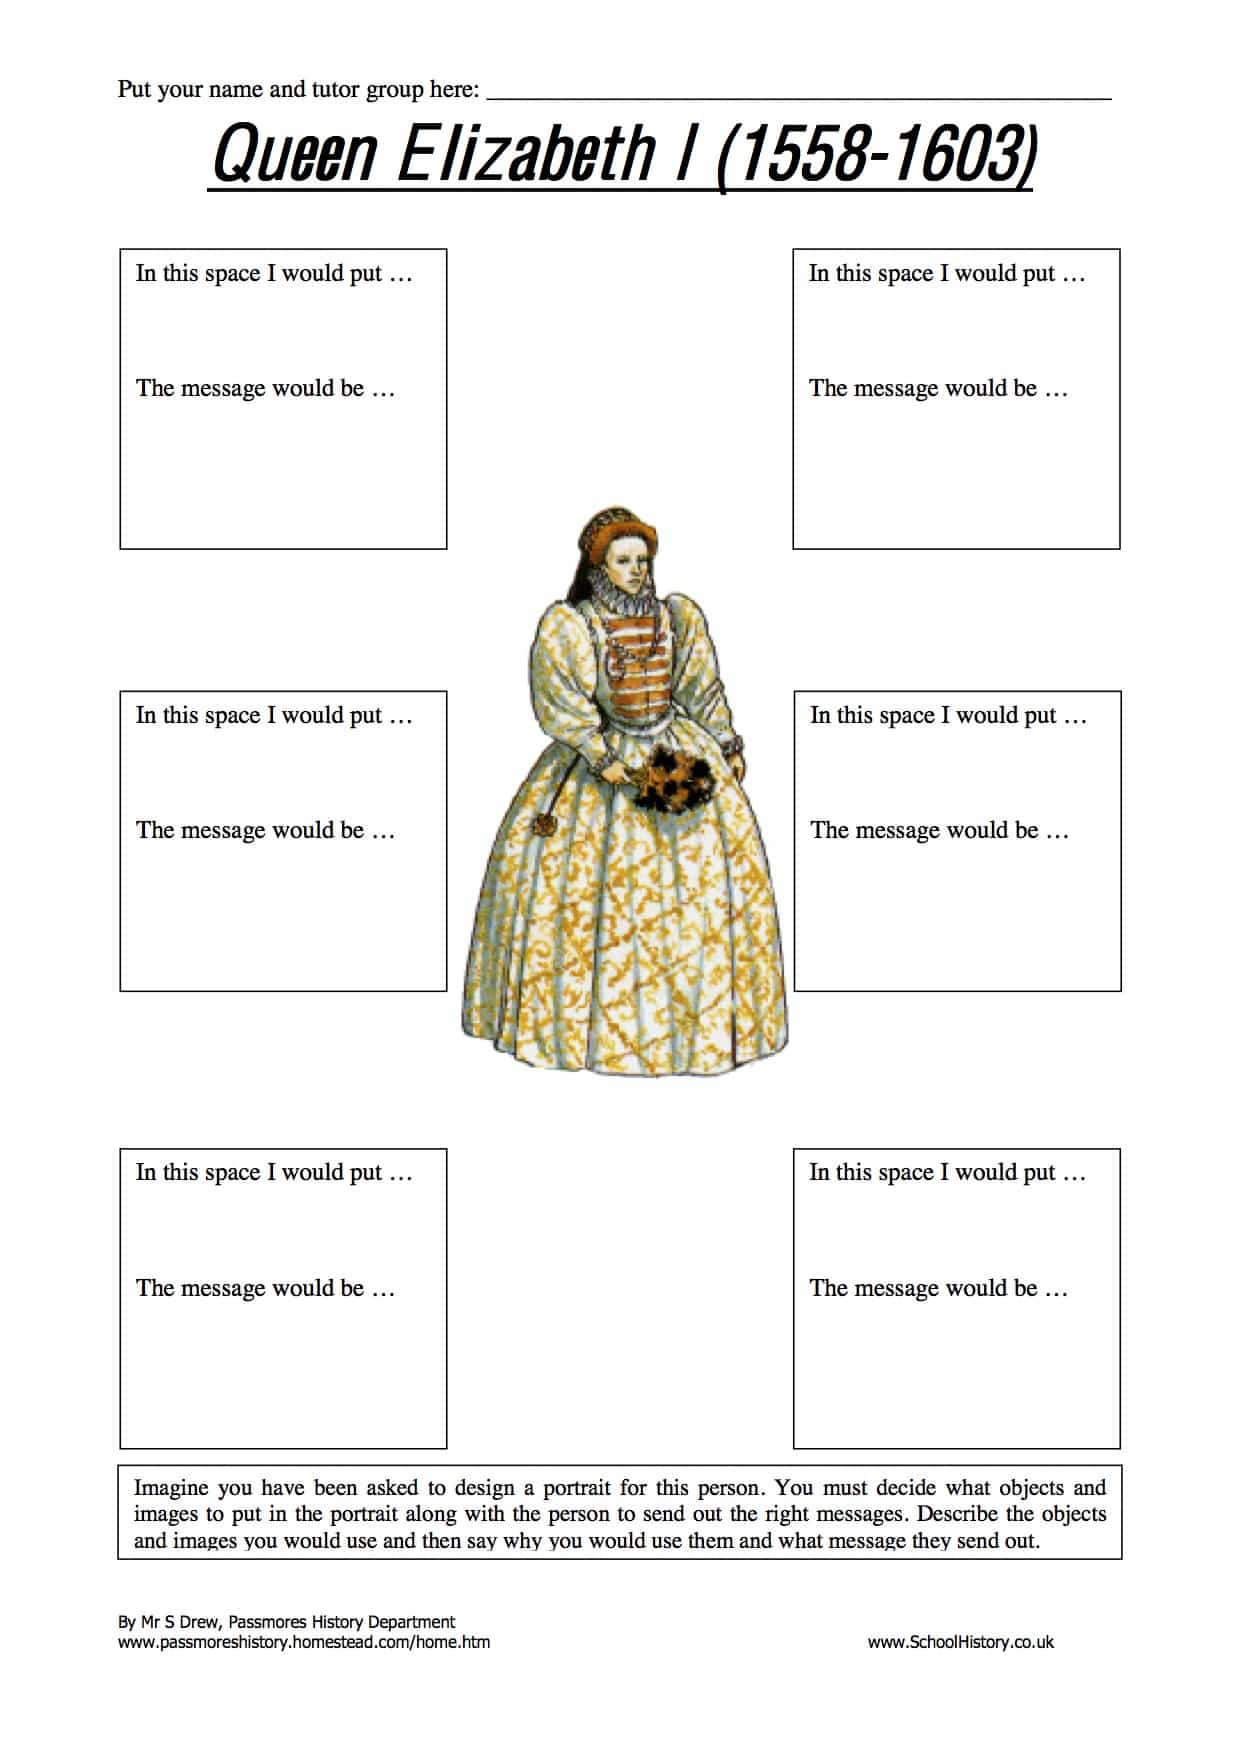 Queen Elizabeth I Portrait Activity